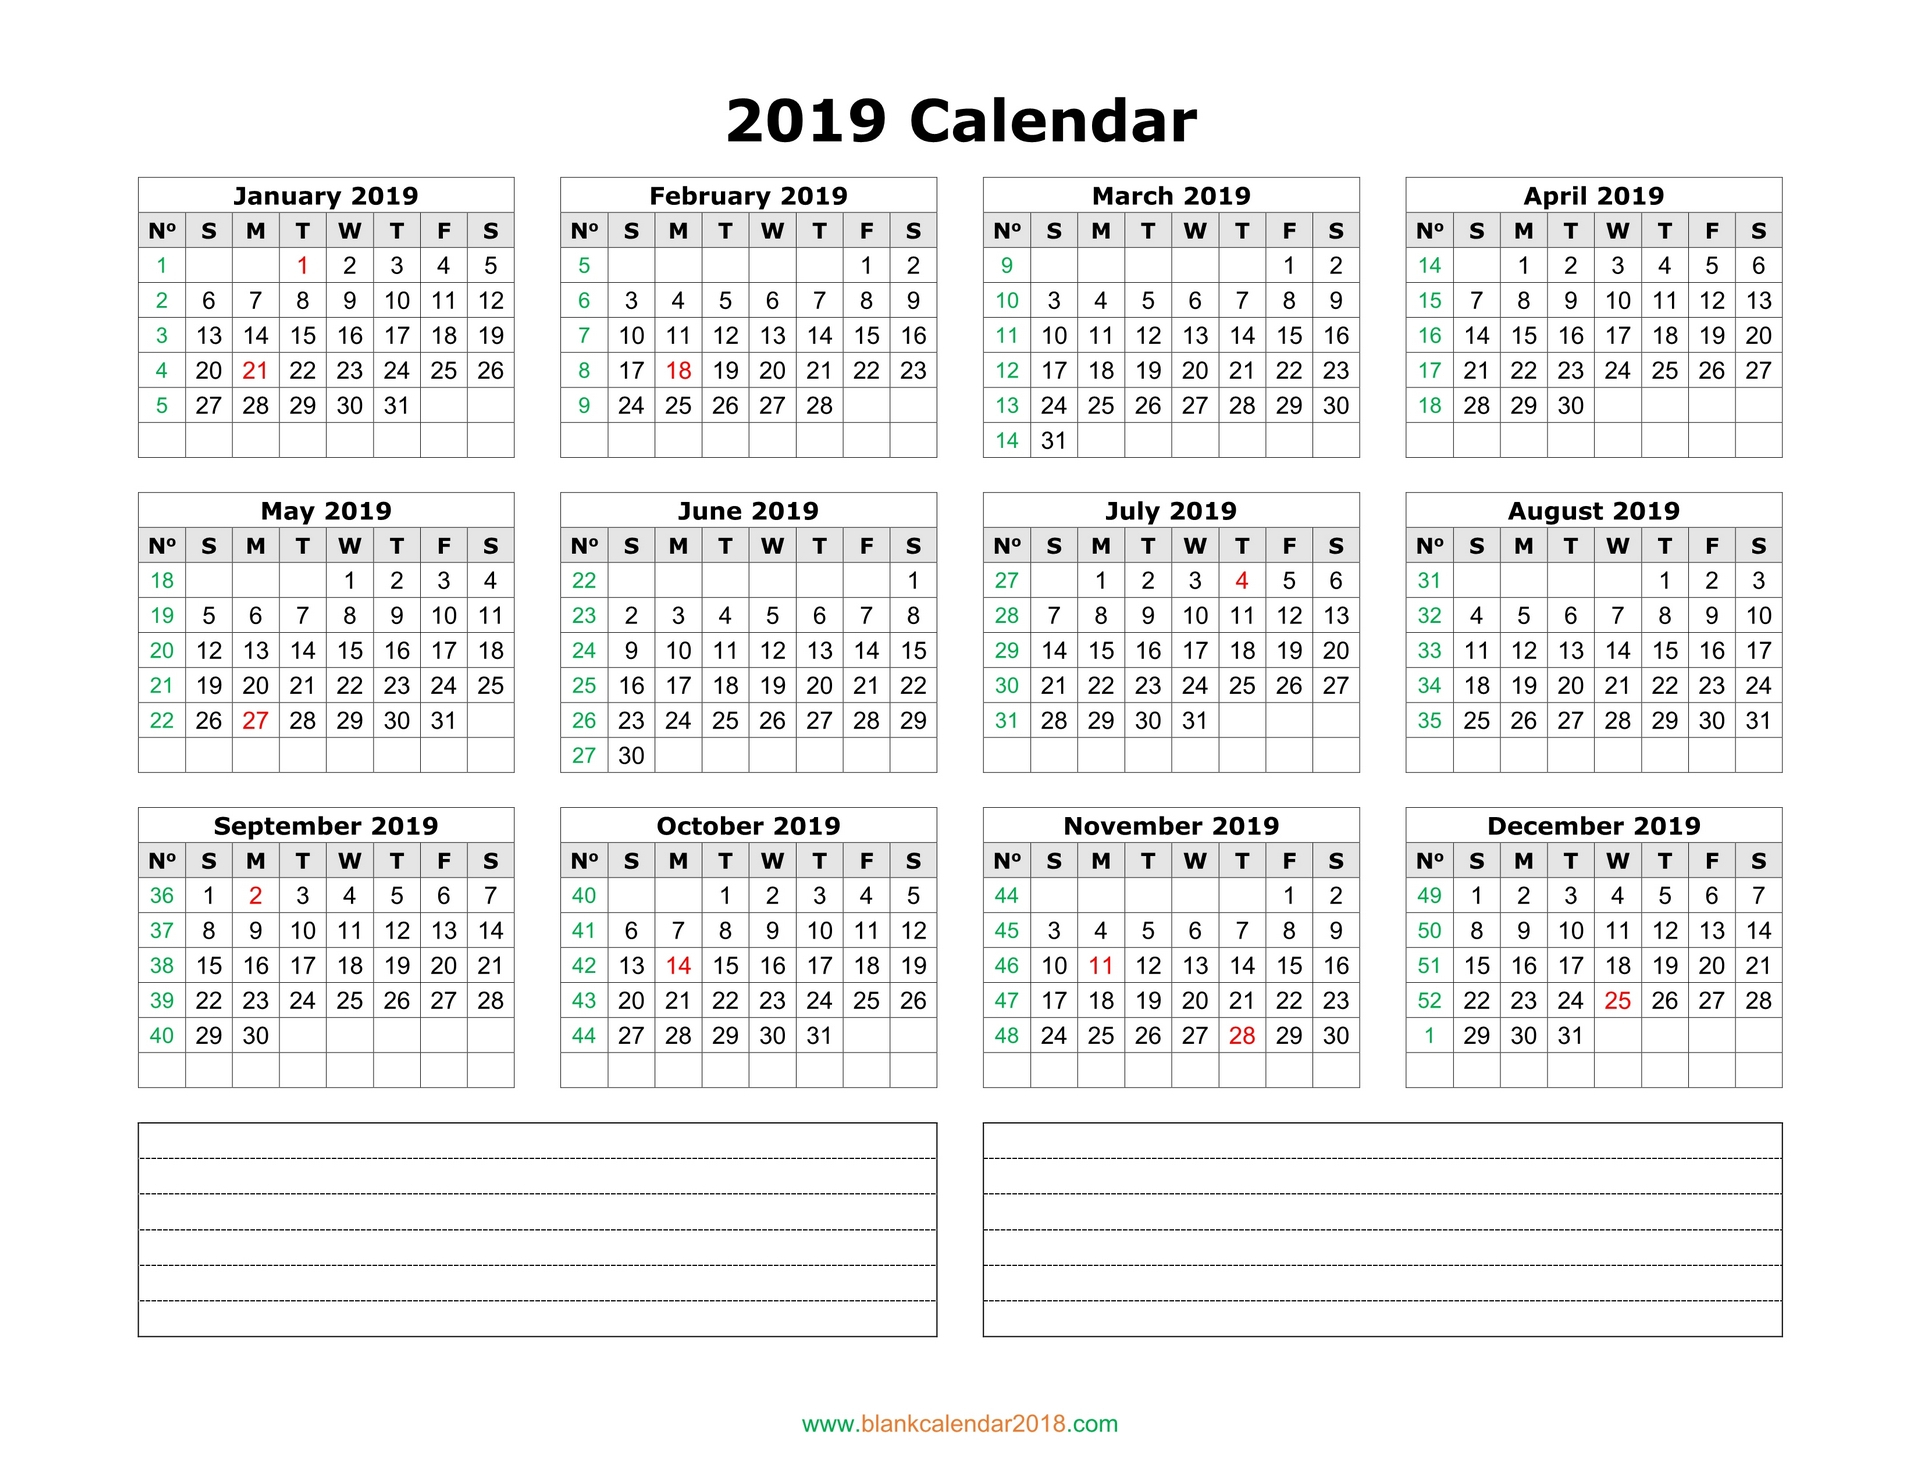 Blank Calendar 2019 within Printable Year Calendar 2019 - 2020 With Space To Write